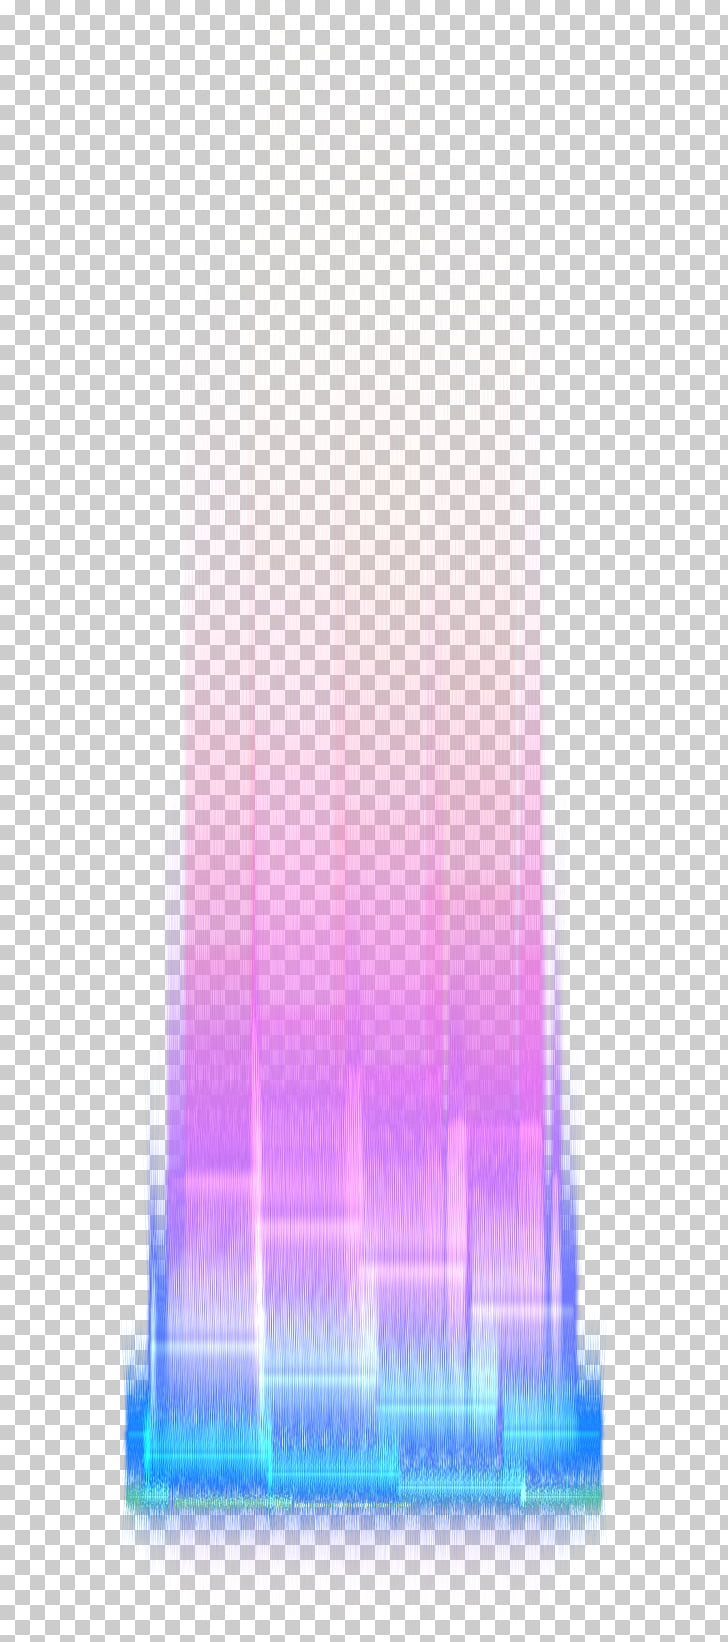 Light , Light effect, blue and pink abstract painting PNG.